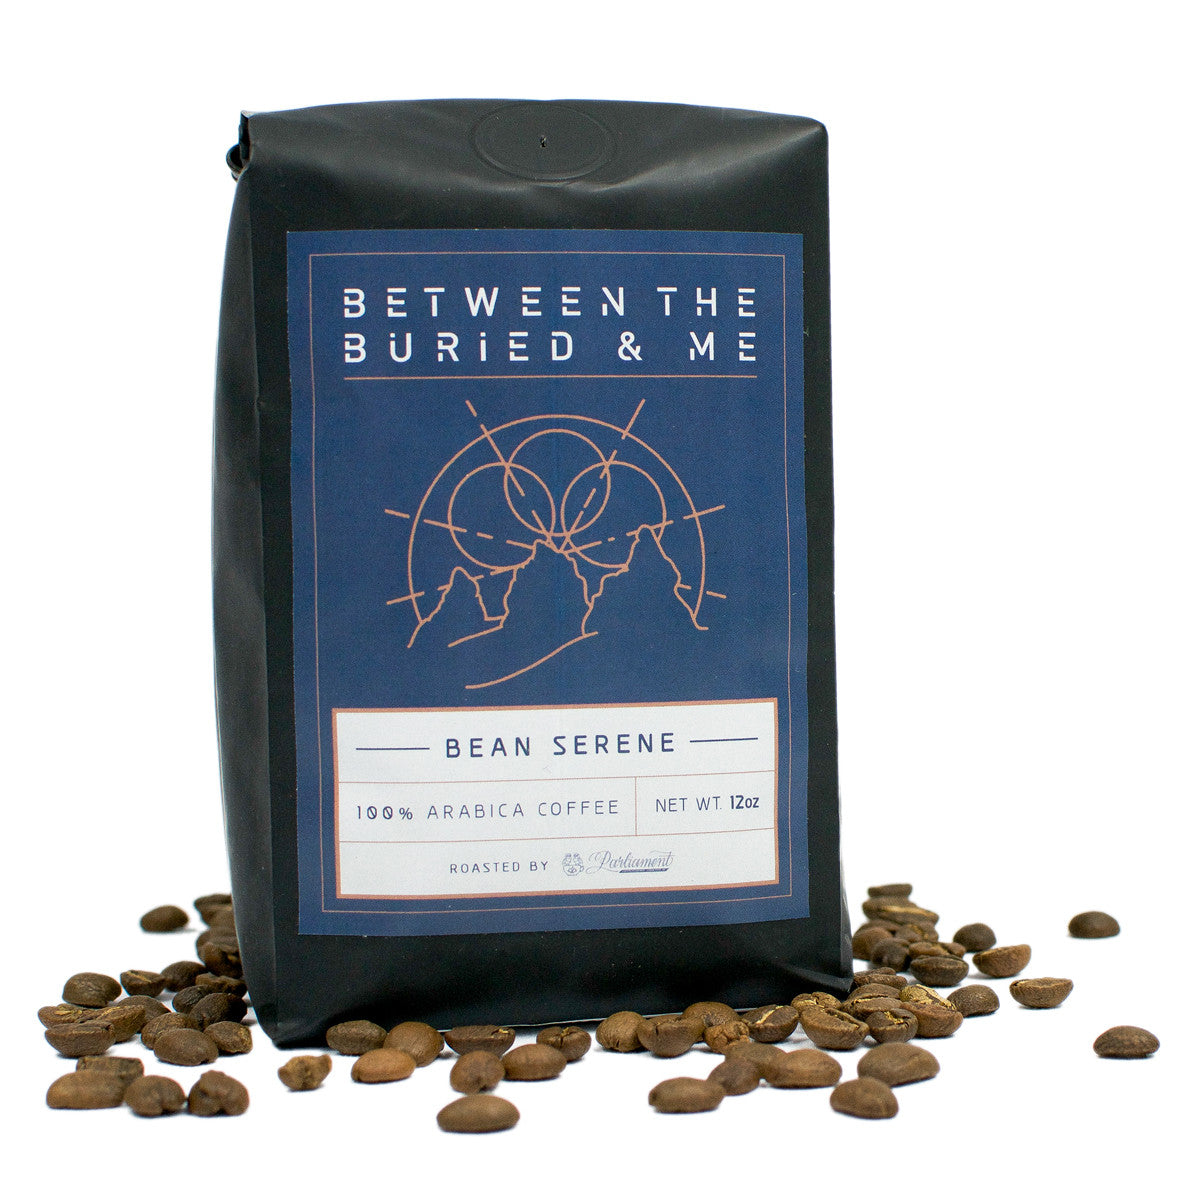 Between the Buried and Me - Bean Serene Coffee - MerchLimited - 1